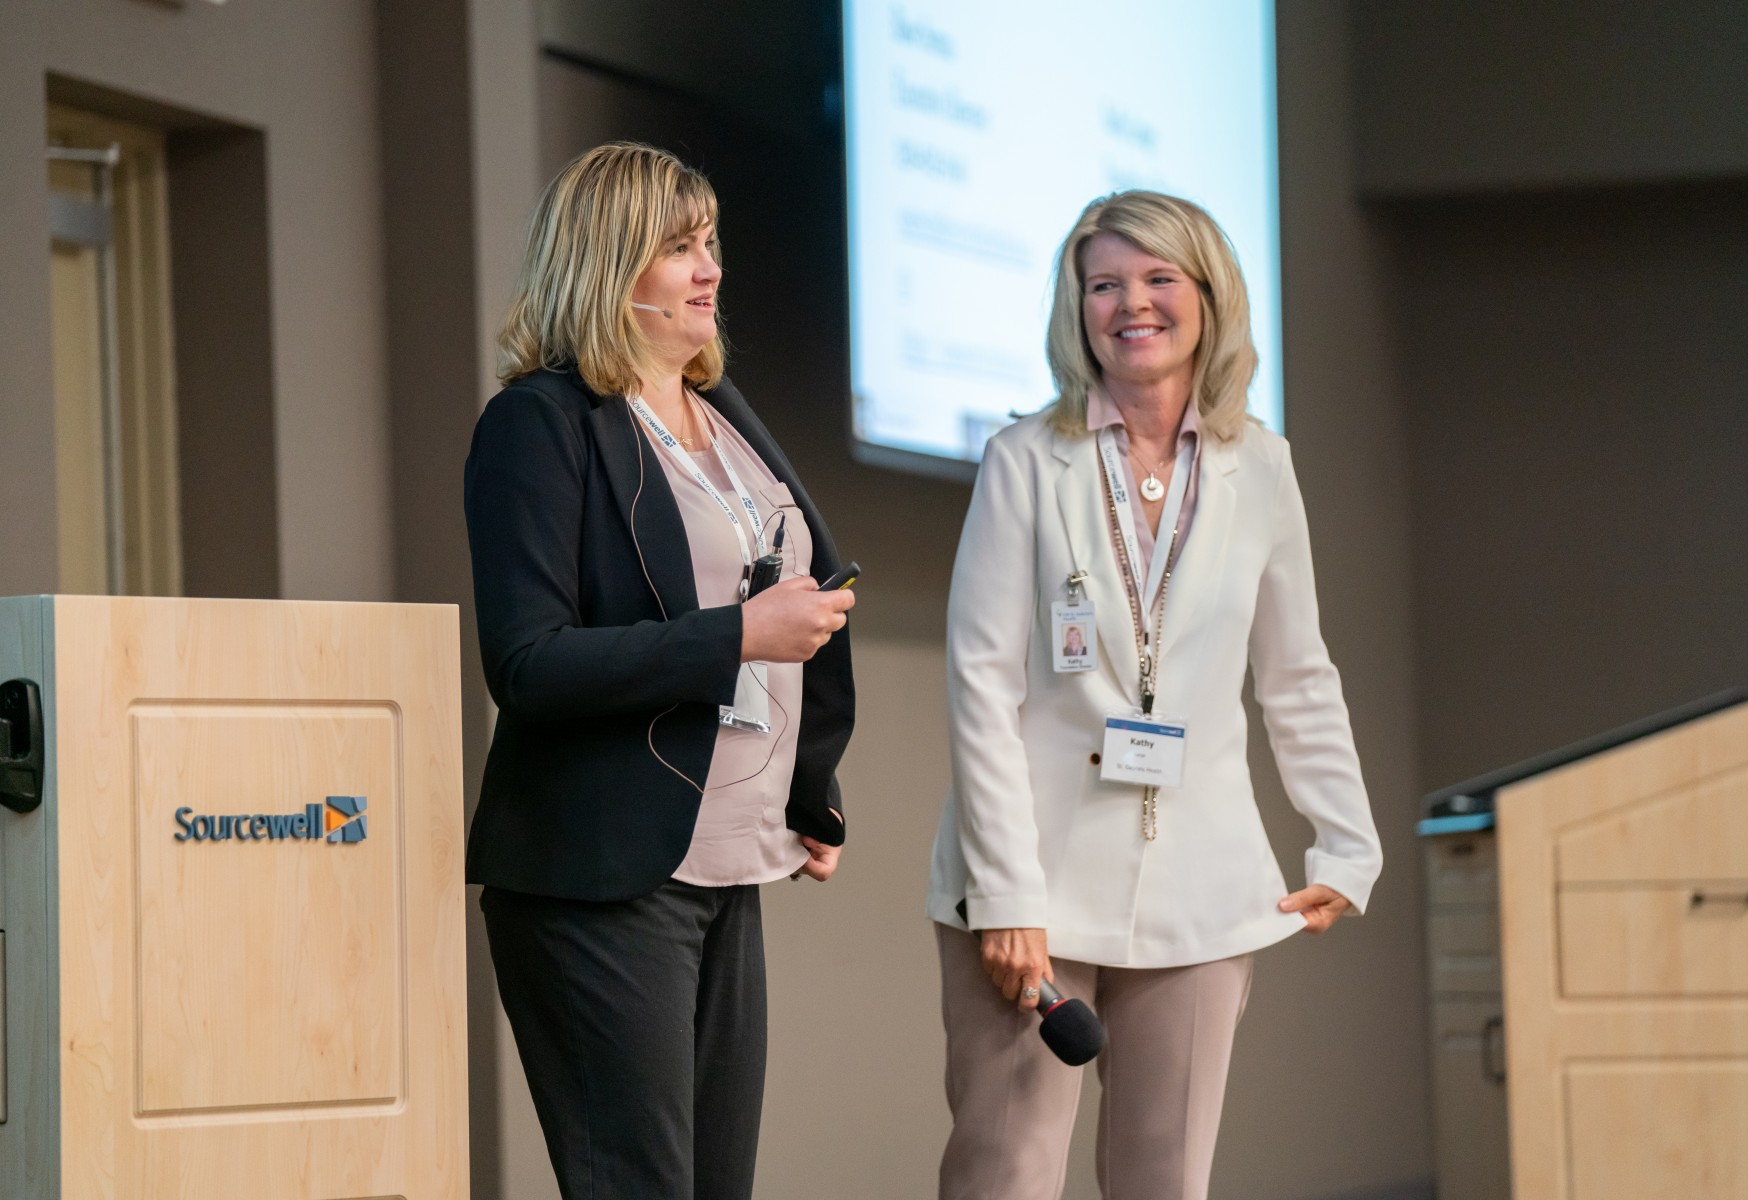 Rose Surma (left) of Oasis Central MN, Inc. and Kathy Lange of CHI St. Gabriel's Health presented at Sourcewell's Nonprofit Innovation Funding Review Day. Their project was selected for funding pending board approval.